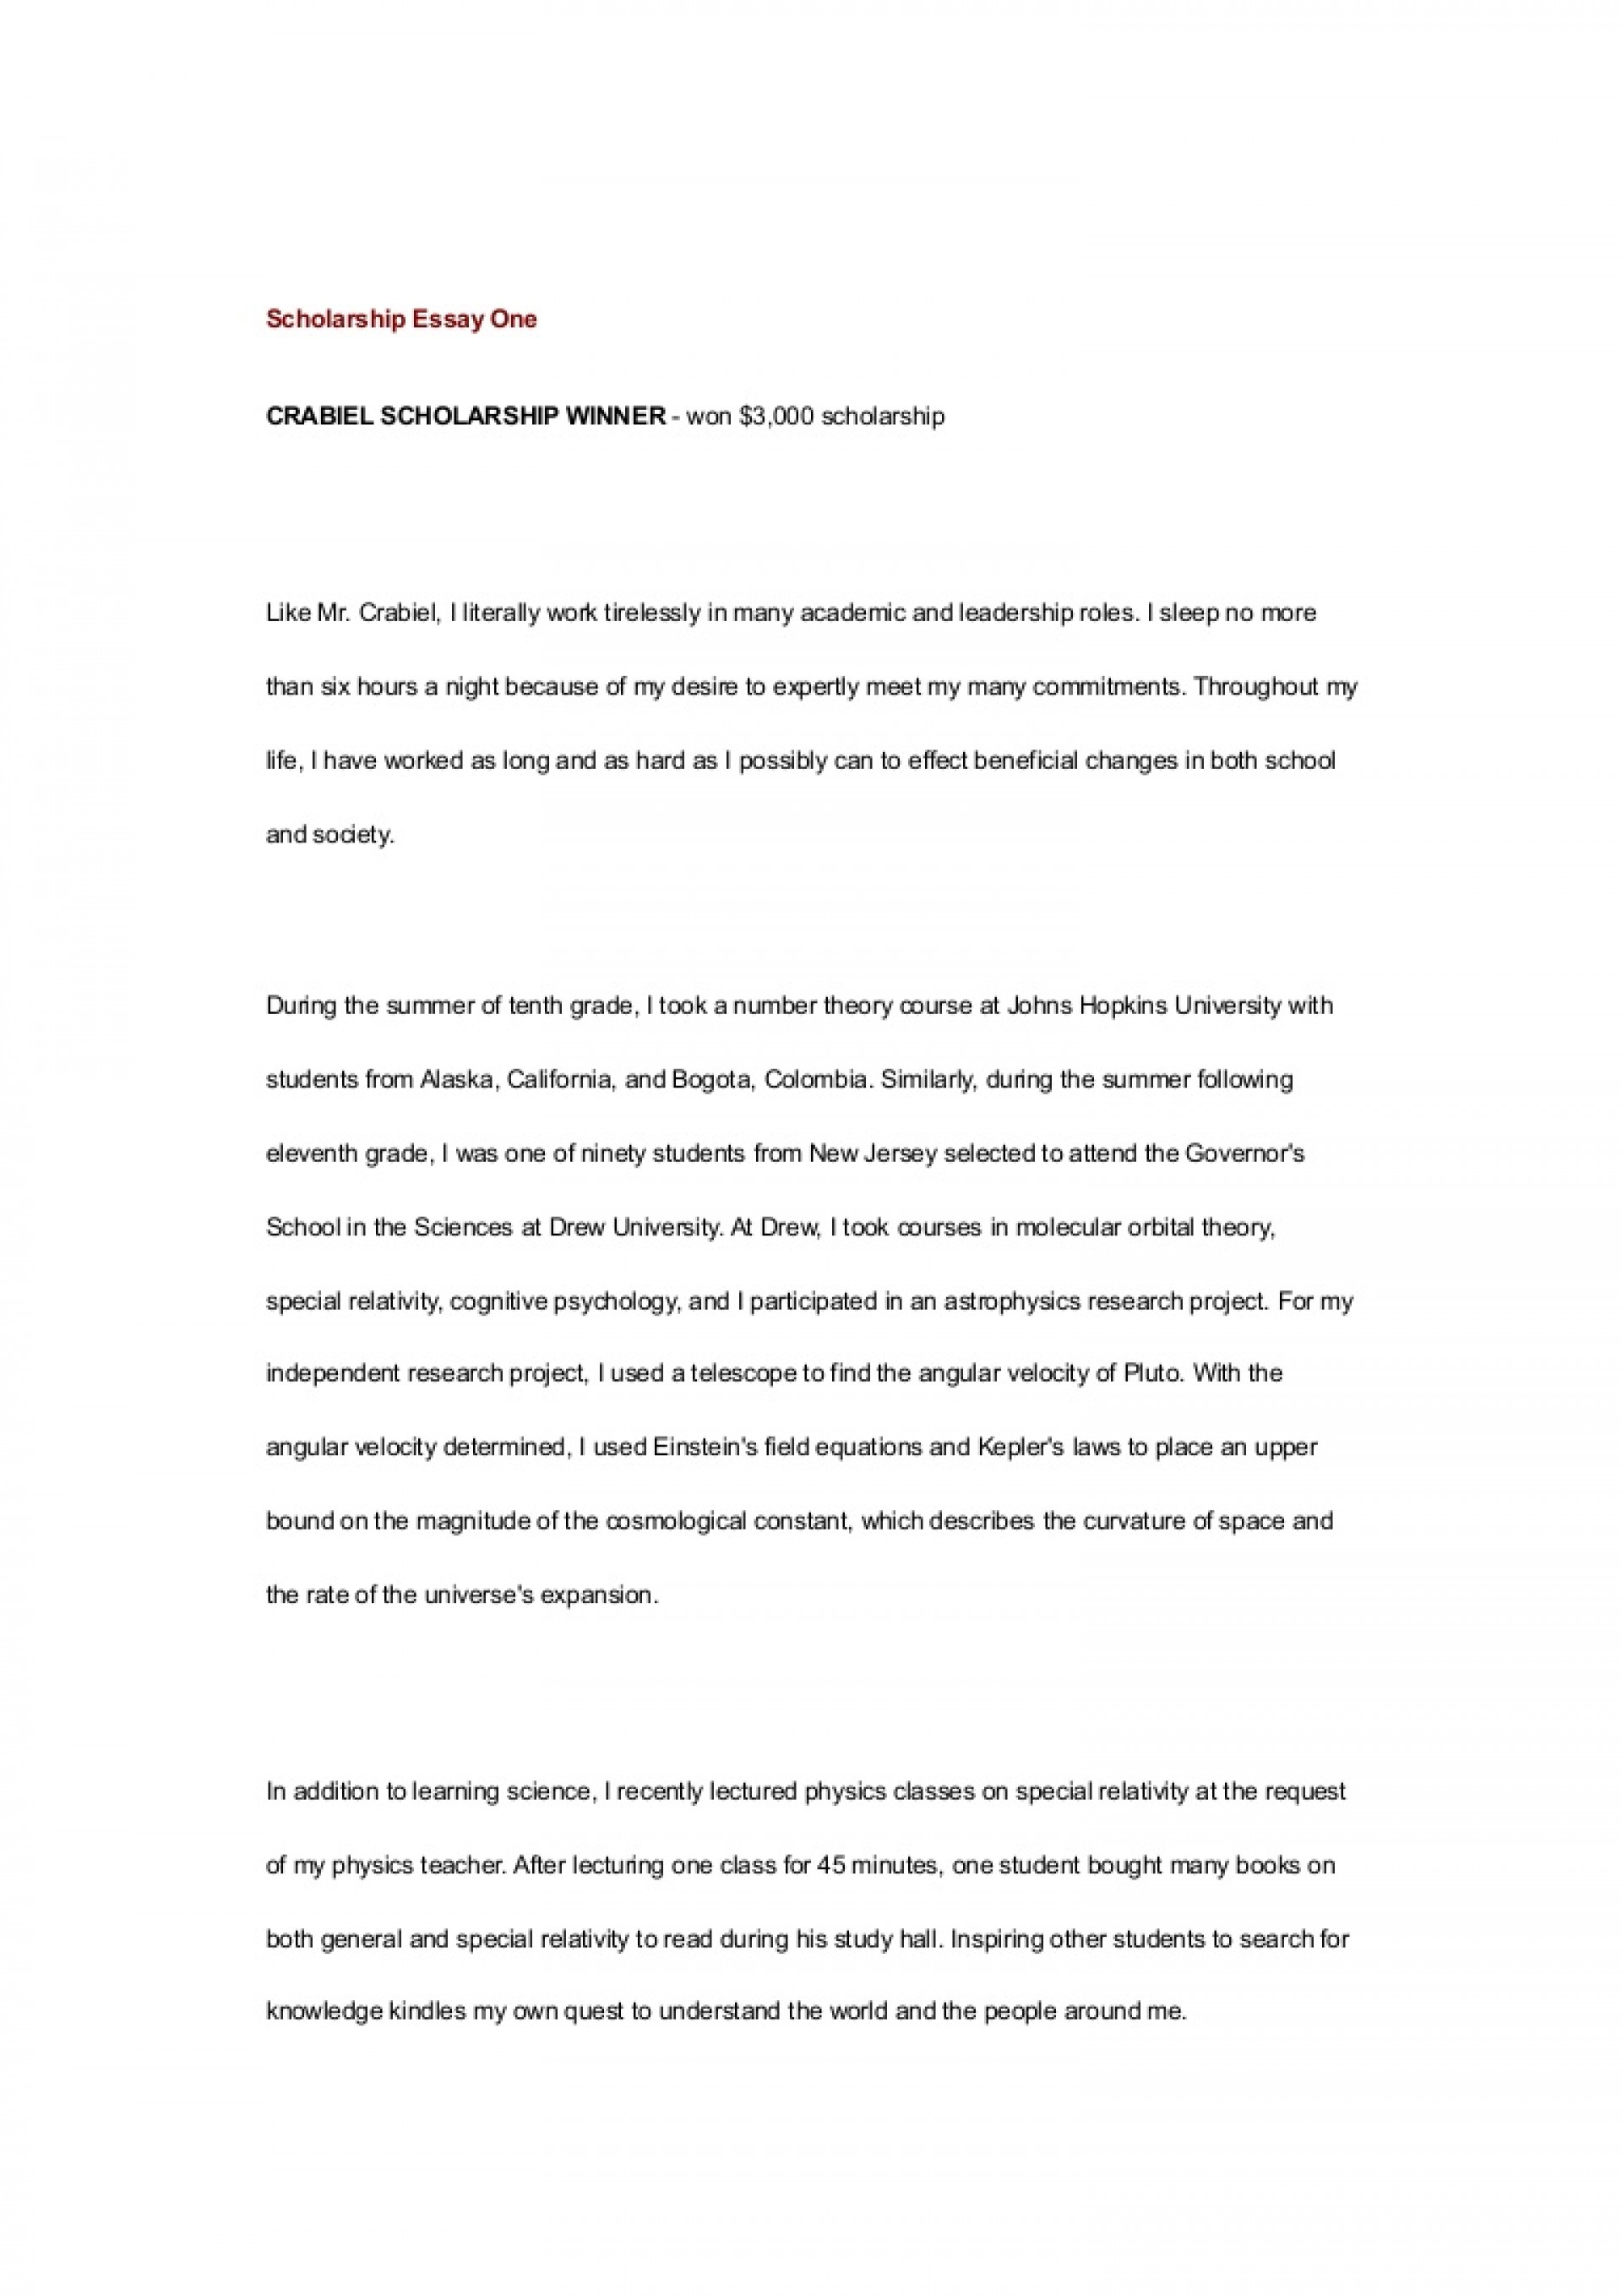 005 Scholarship Essay Examples Example Scholarshipessayone Phpapp01 Thumbnail Impressive Financial Need Pdf About Yourself 1920